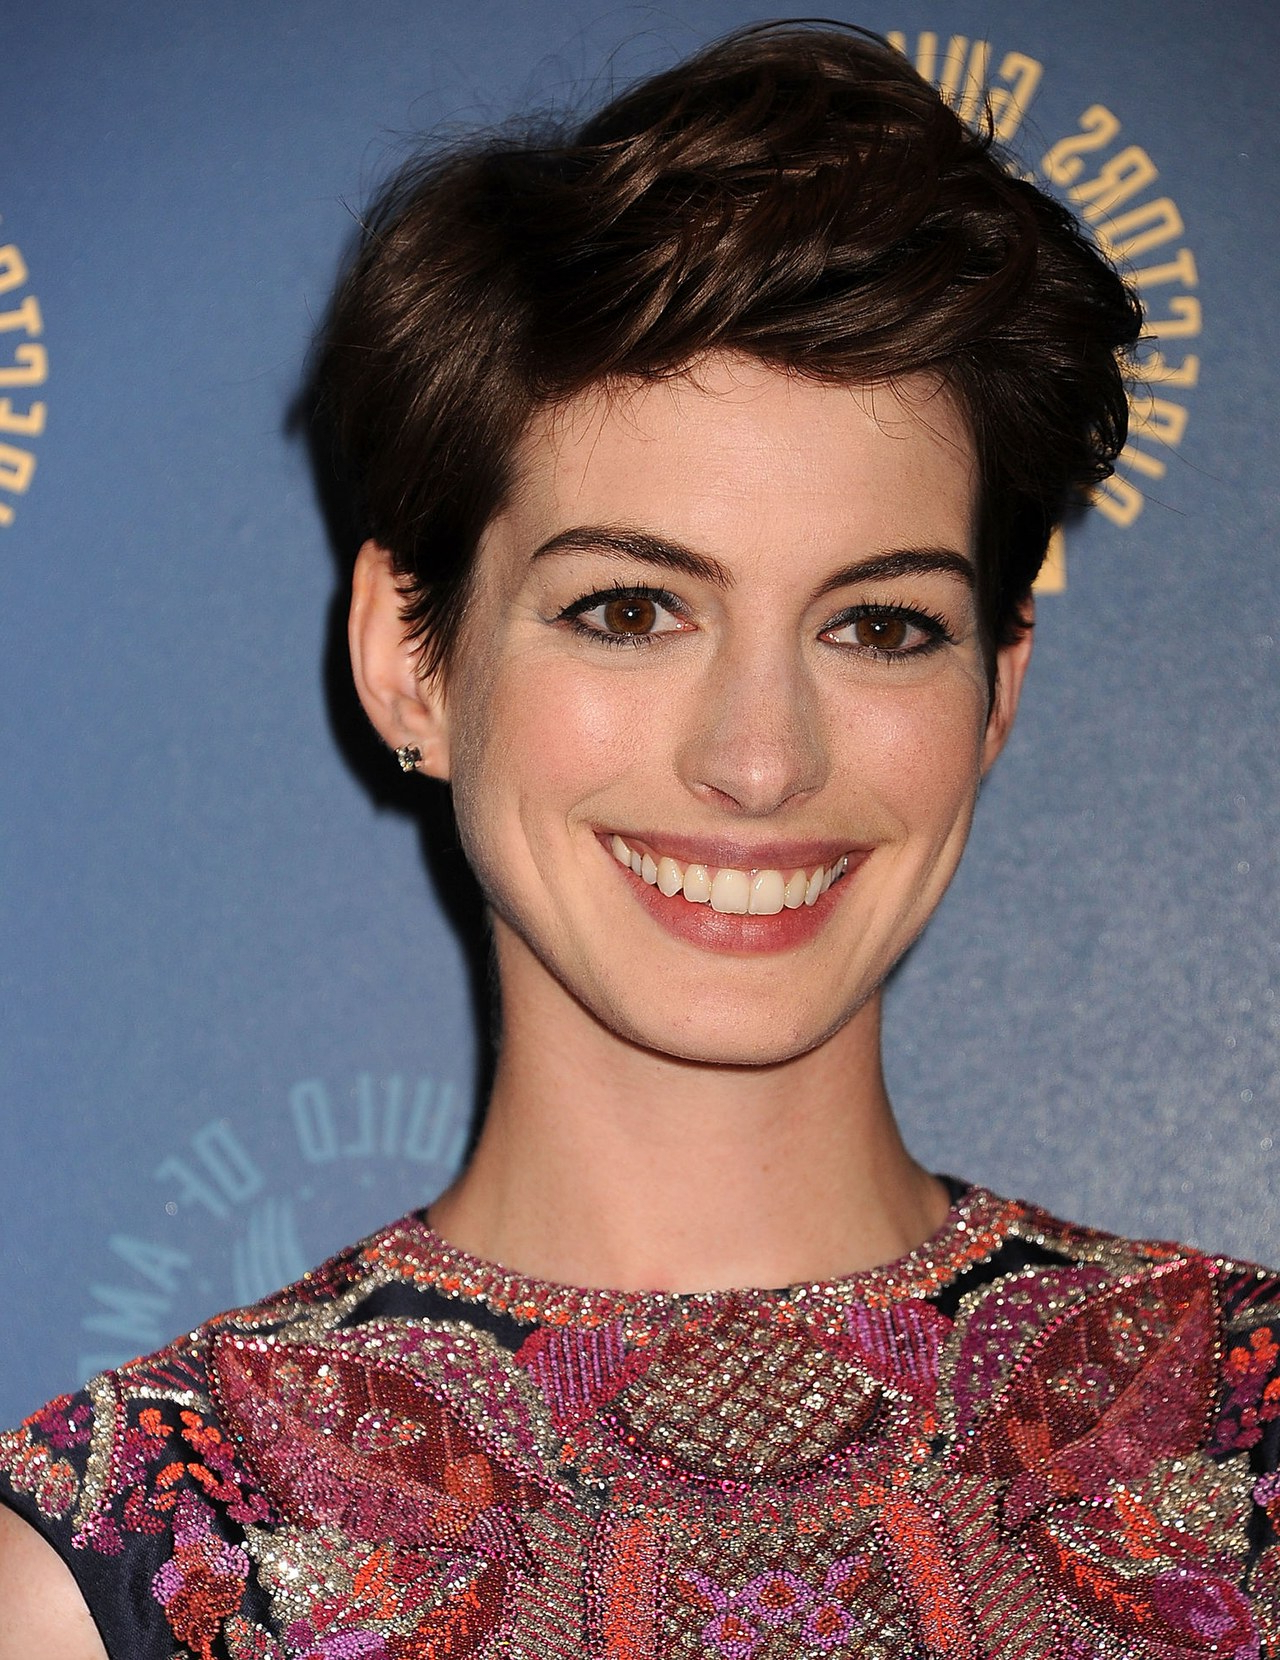 This Is My Favorite Way Anne Hathaway Has Styled Her Short Haircut Intended For Anne Hathaway Short Haircuts (View 25 of 25)